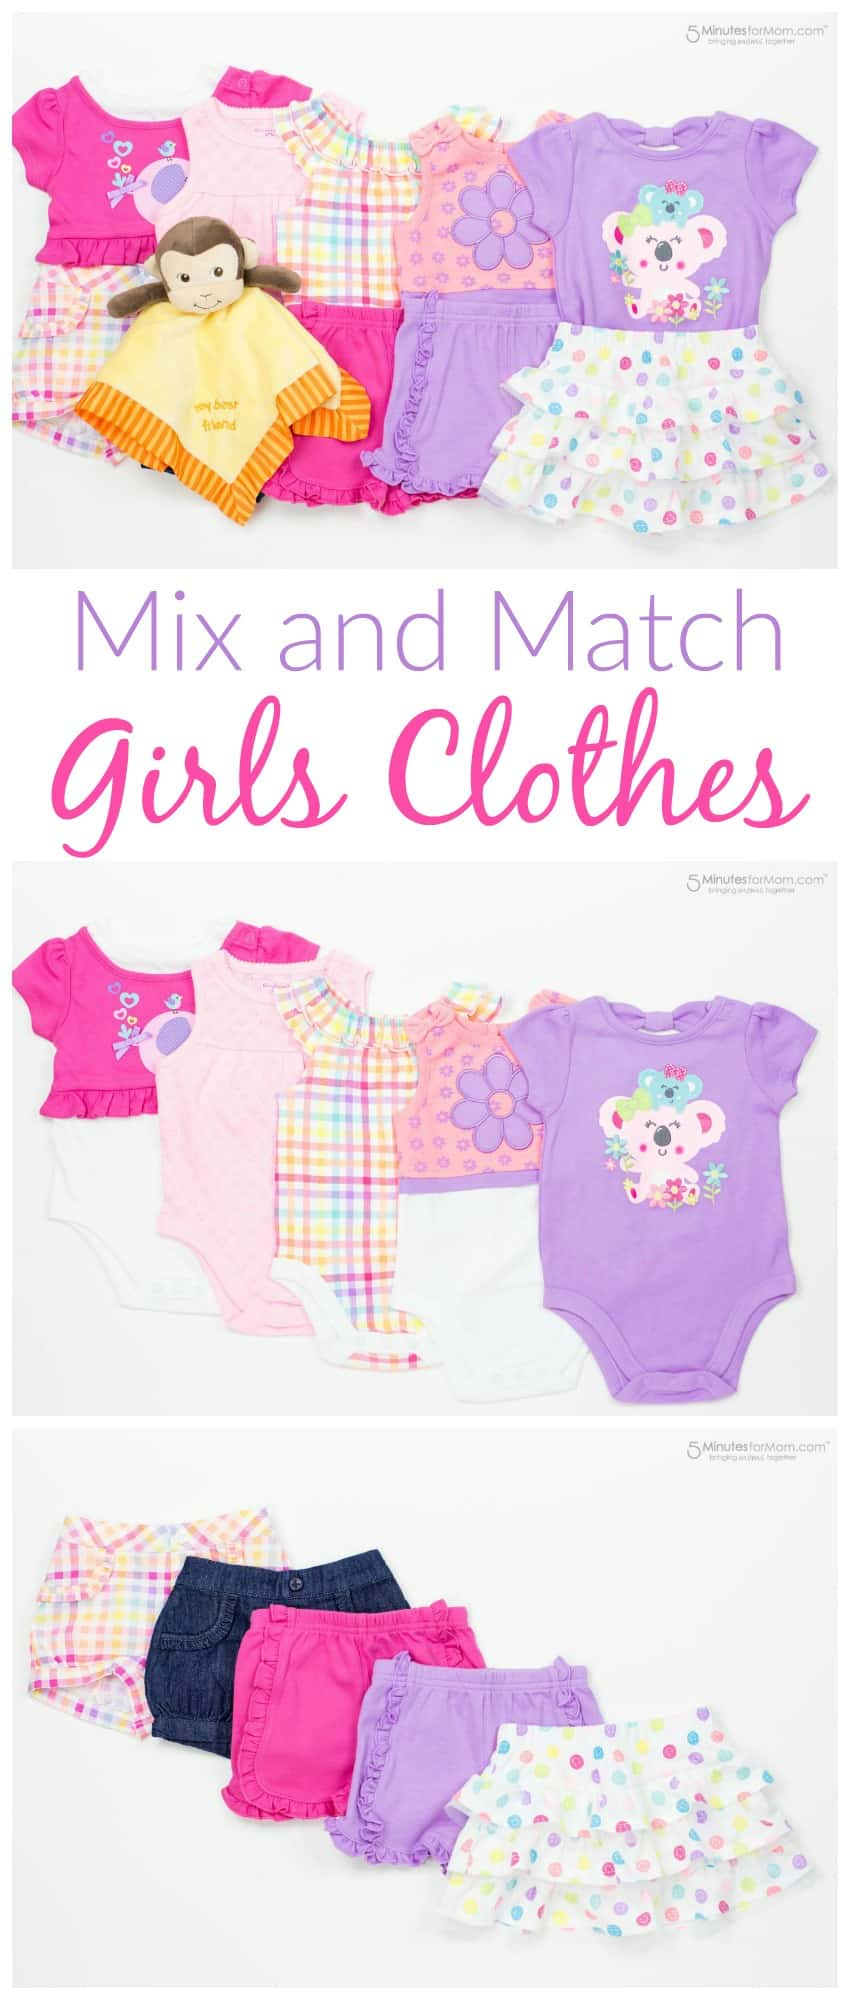 Mix and Match Girls Clothes